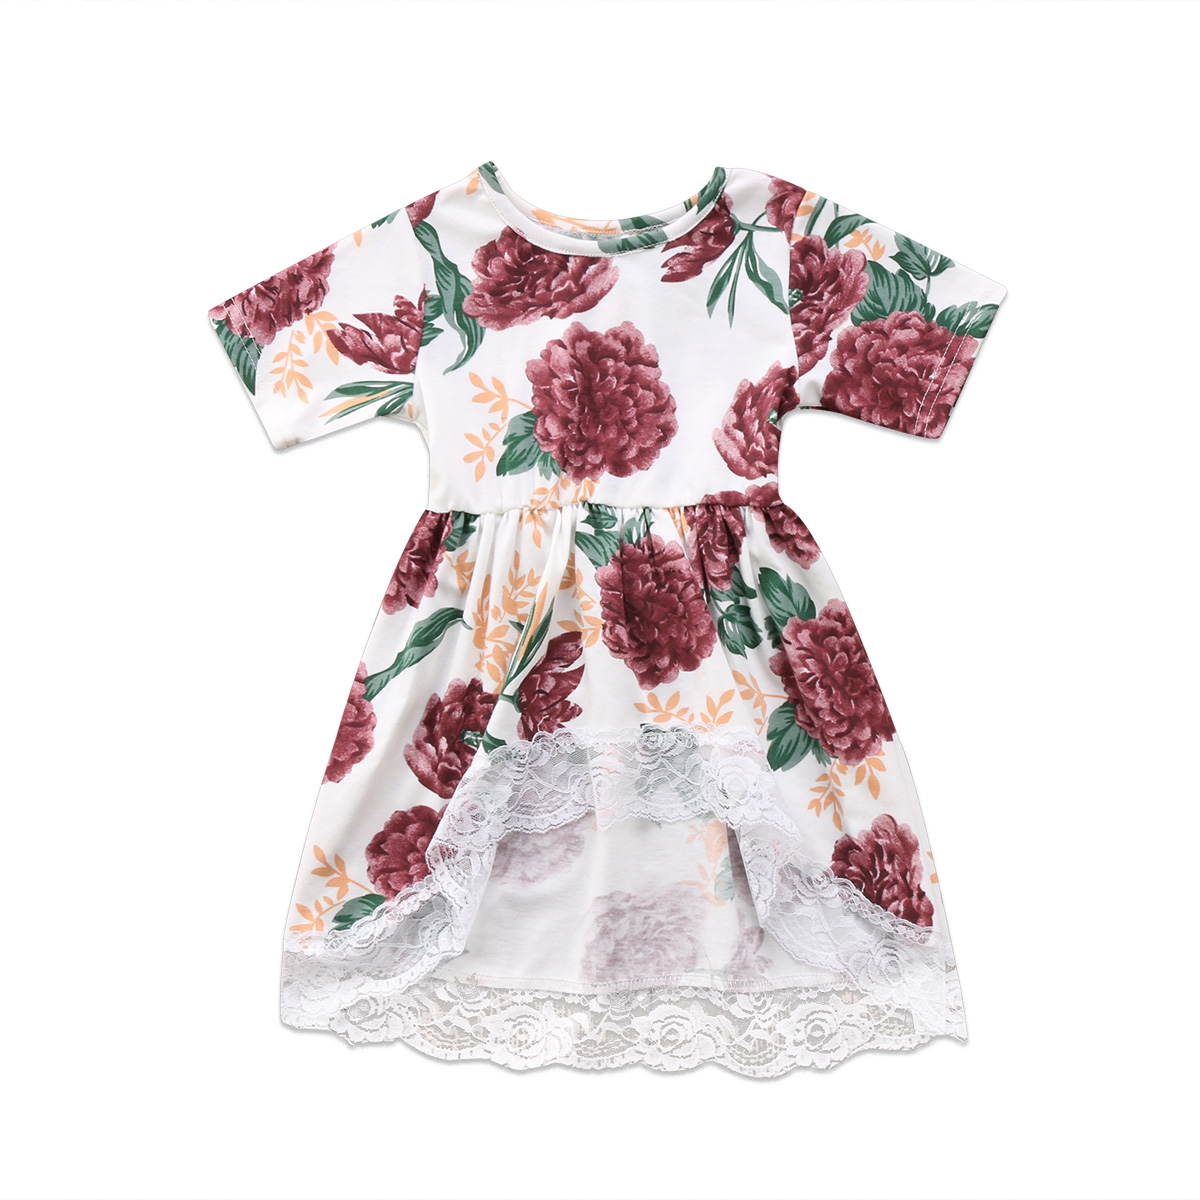 2018 New Newborn Kid Baby Girl Clothes Floral Lace Tail ...